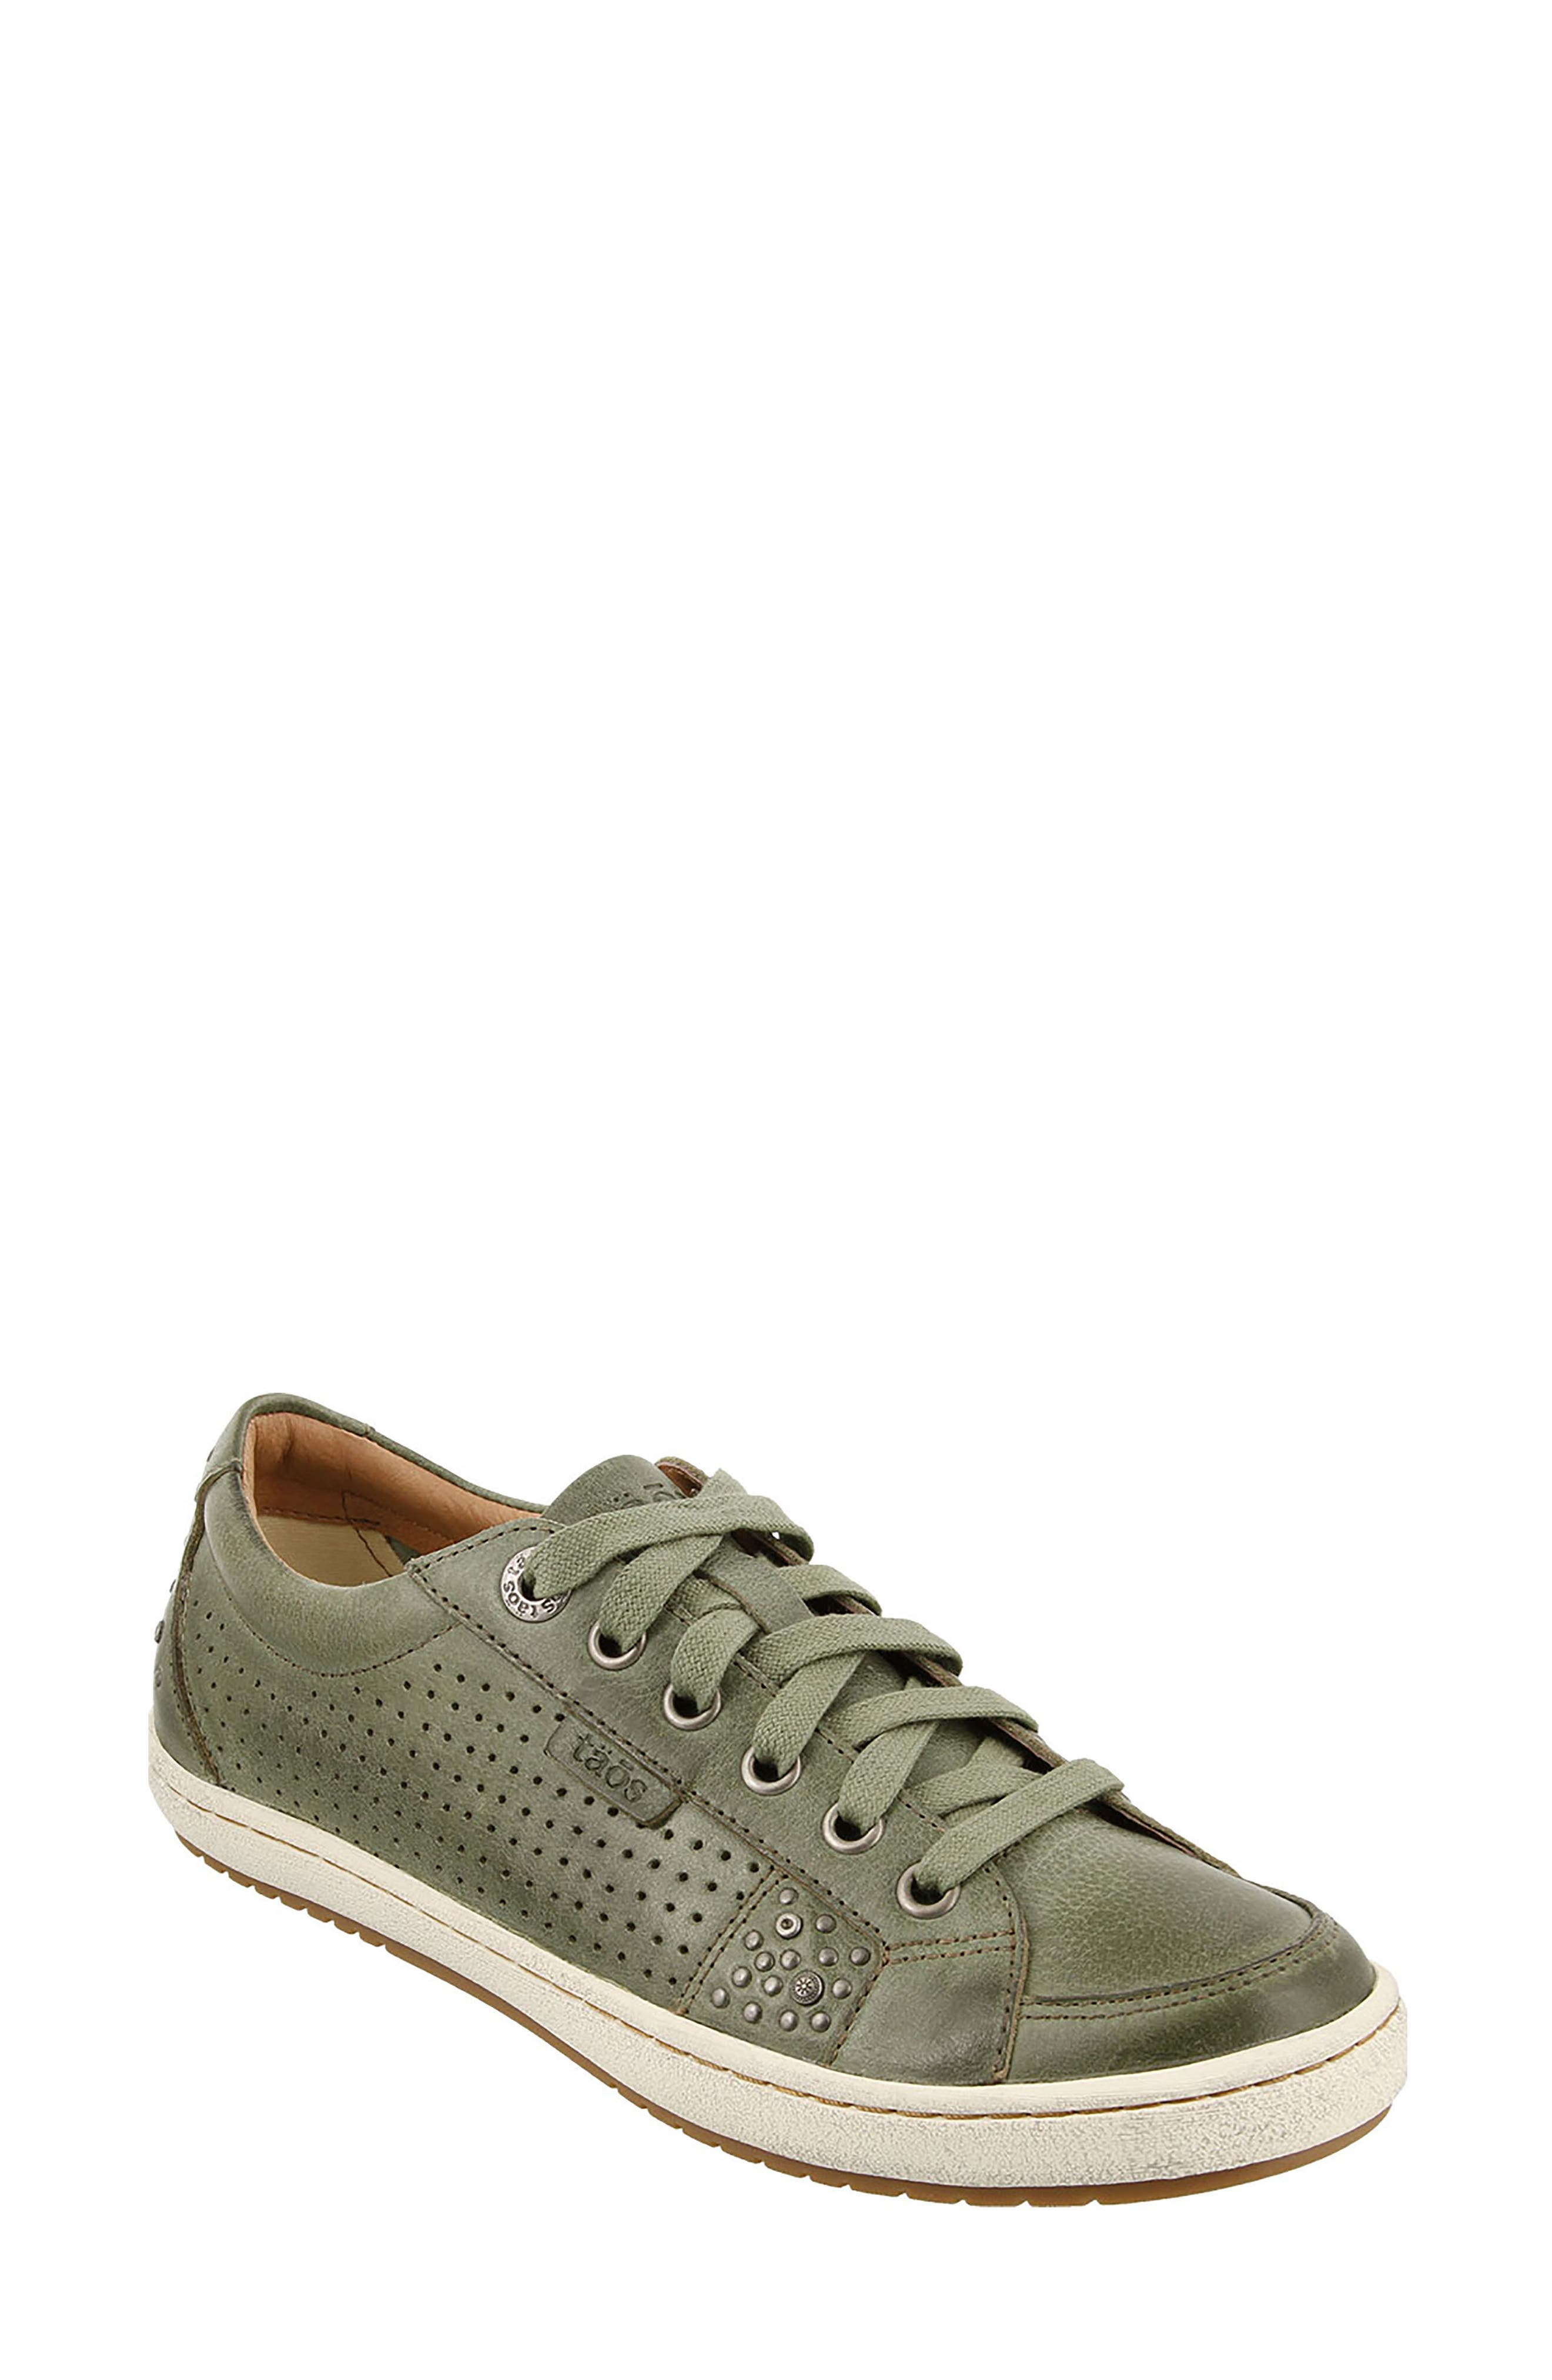 'Freedom' Sneaker,                         Main,                         color, Sage Leather